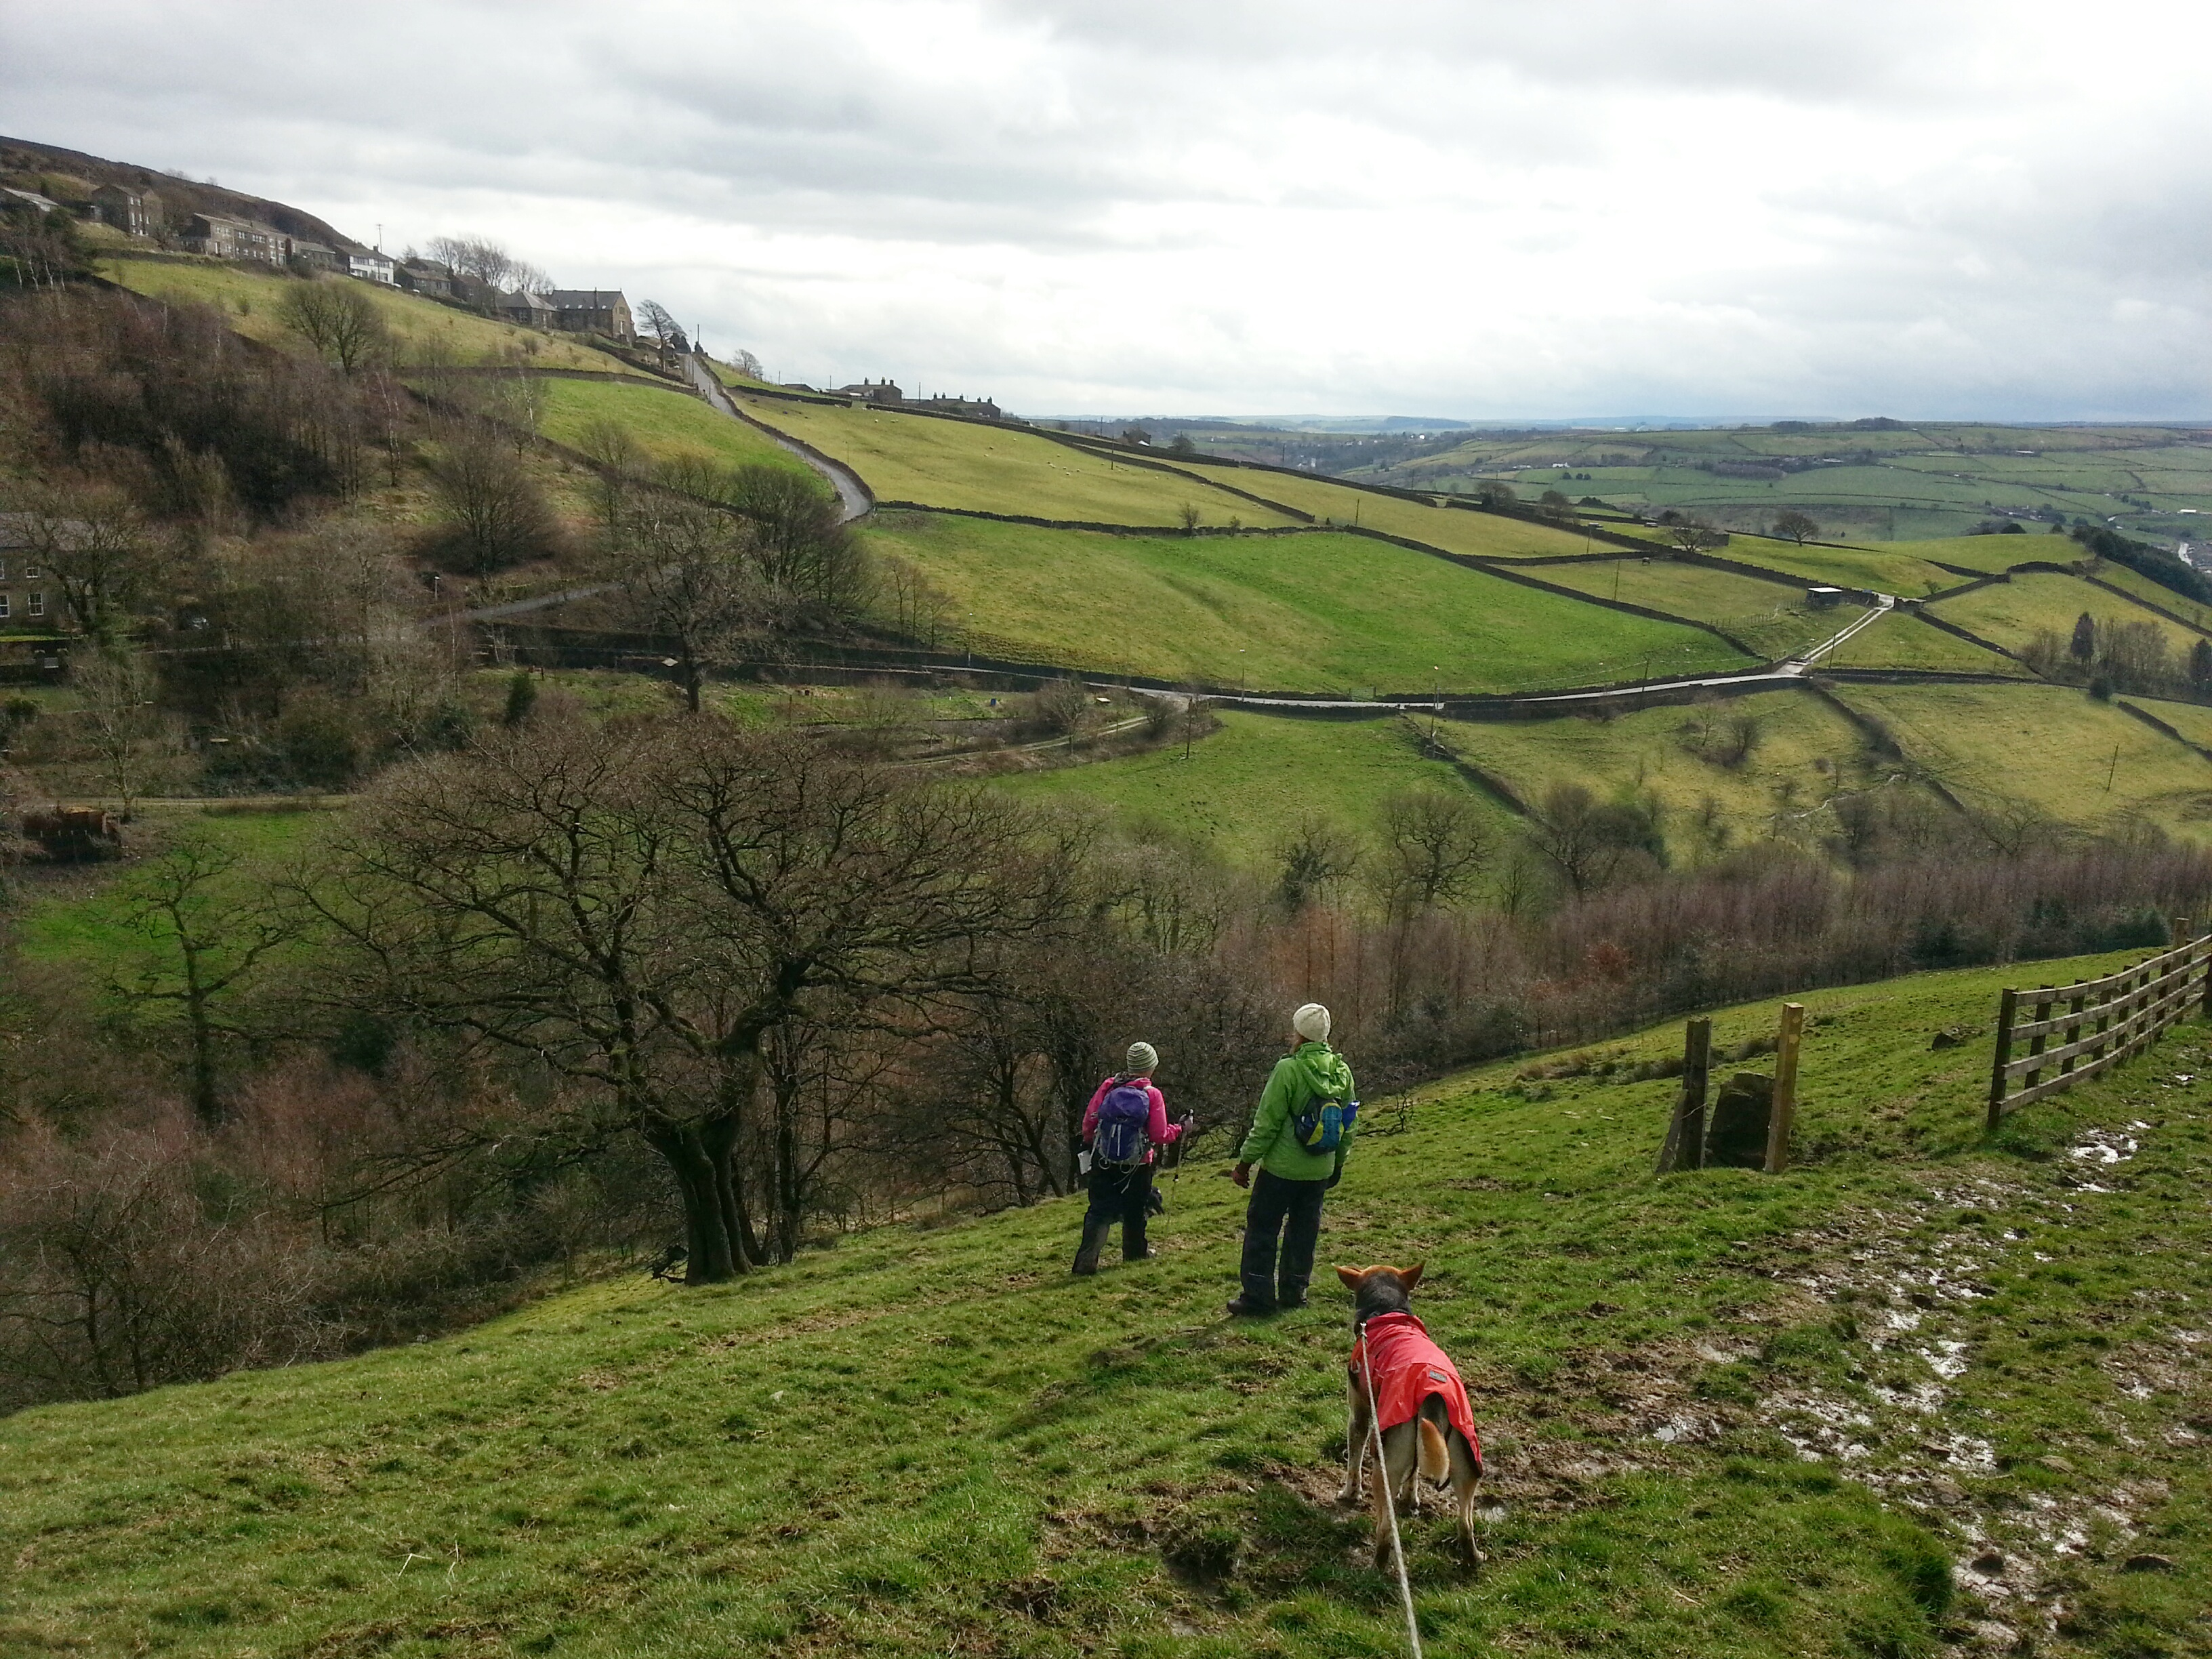 Colne Valley Circular Walk hike Crimble Clough